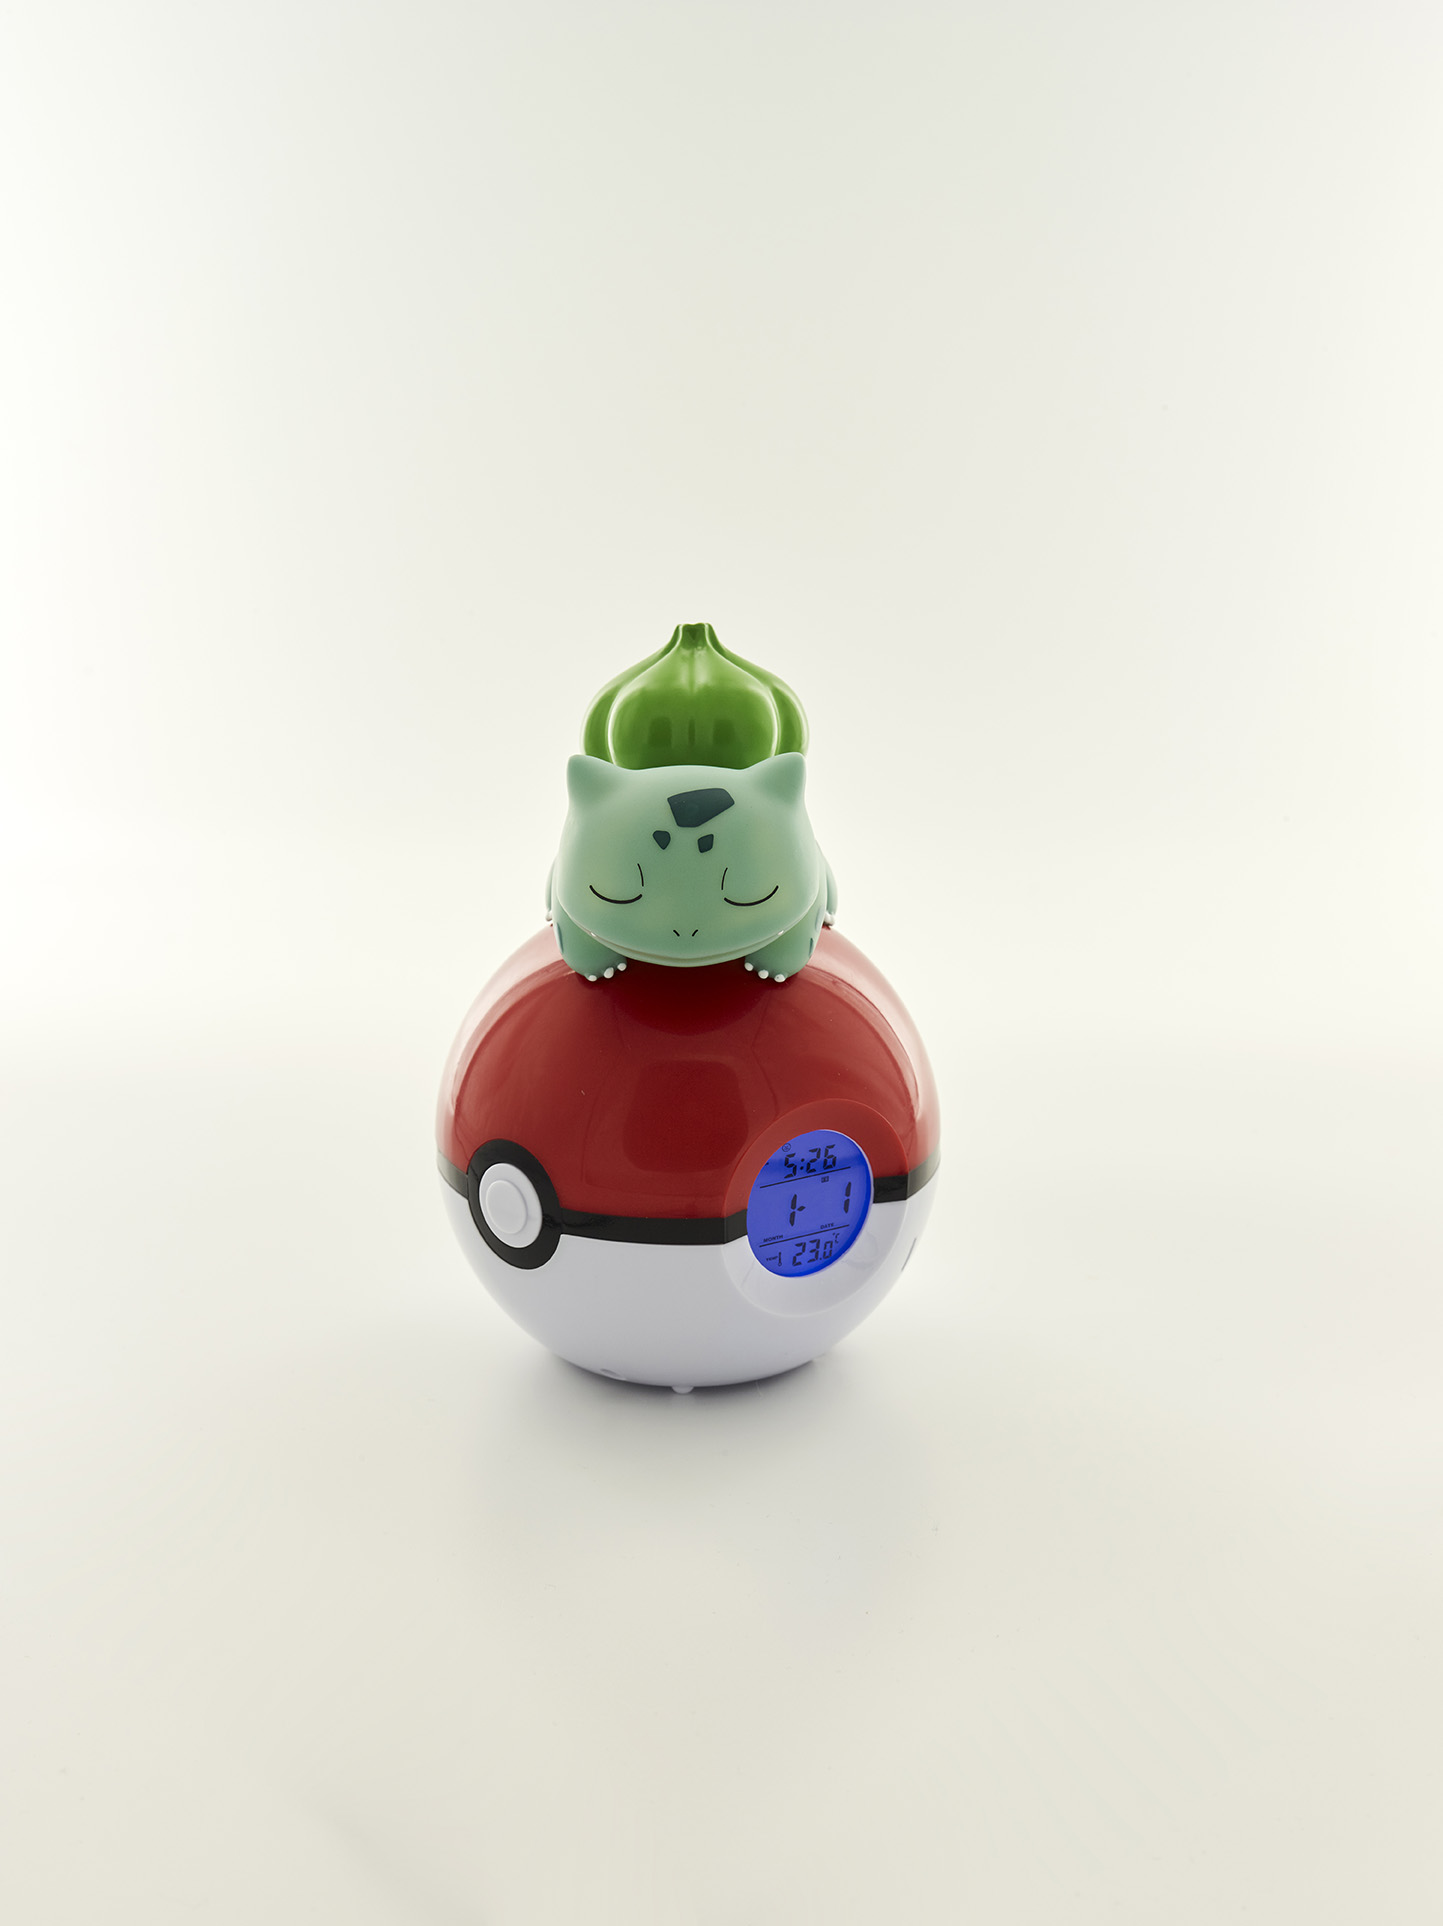 Pokémon Bulbasaur Night light and Alarm Clock 3